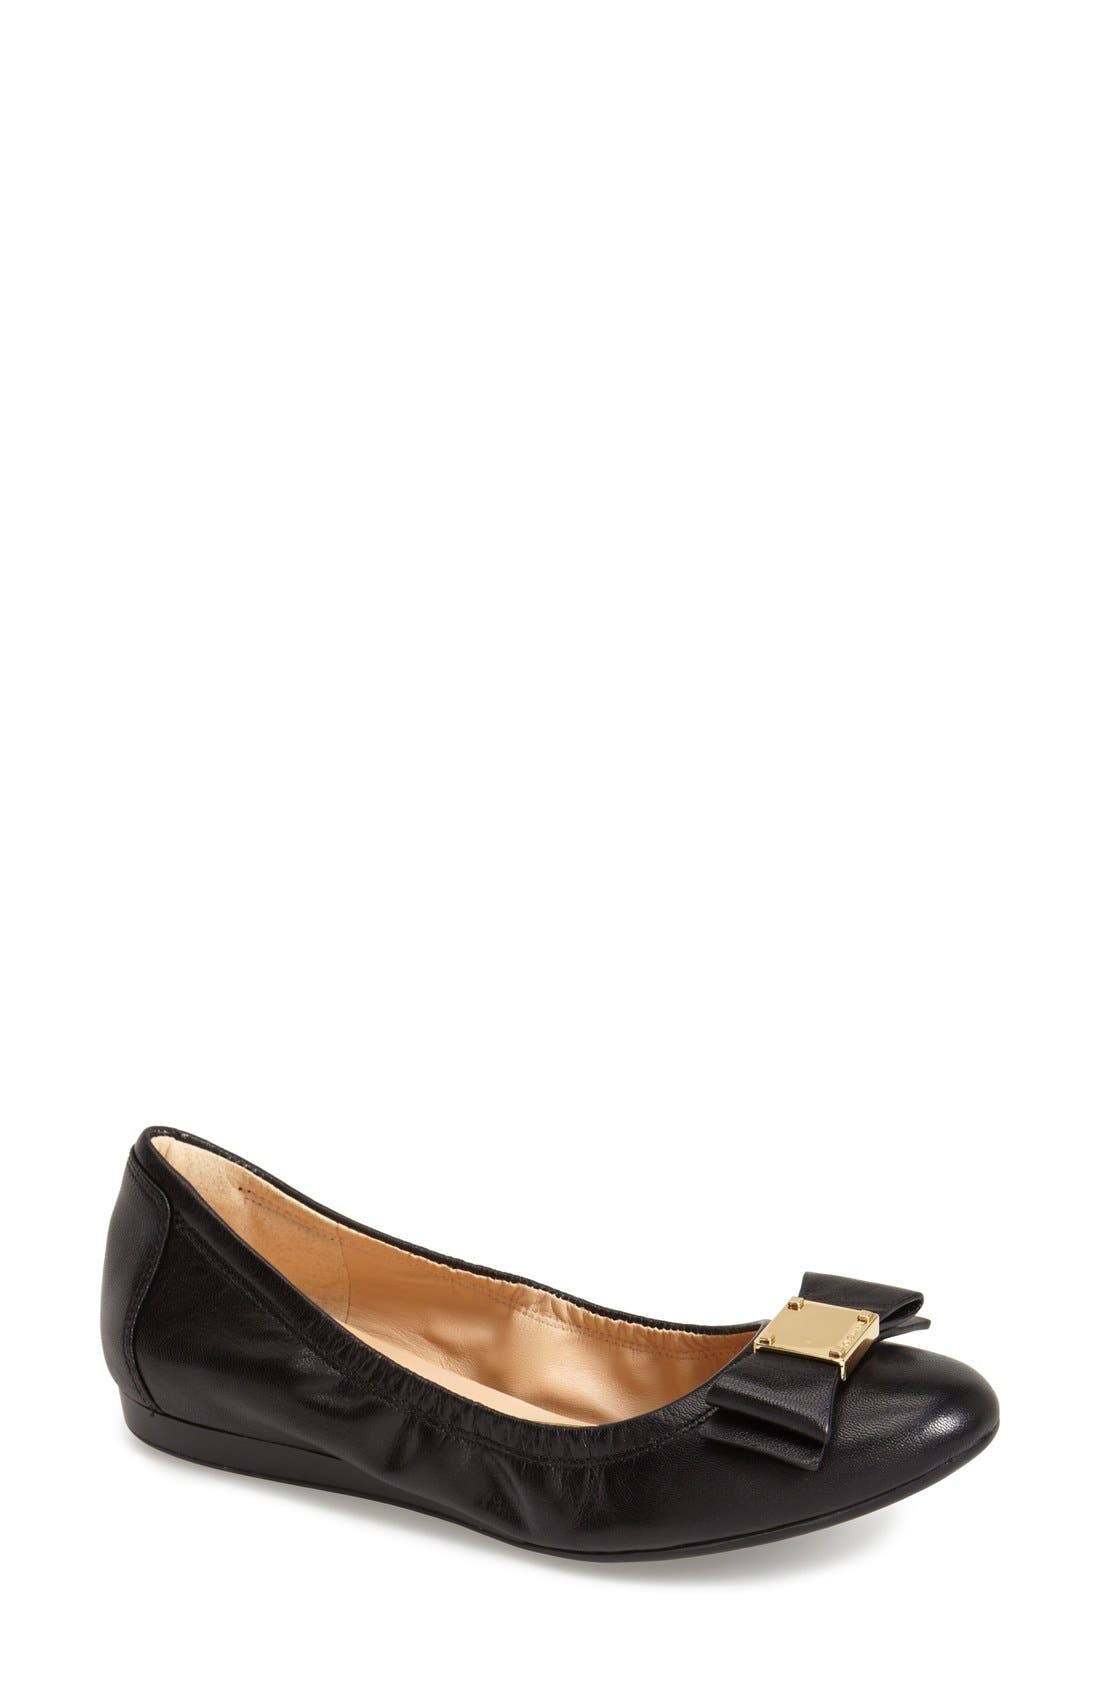 'Tali' Bow Ballet Flat,                             Main thumbnail 1, color,                             001